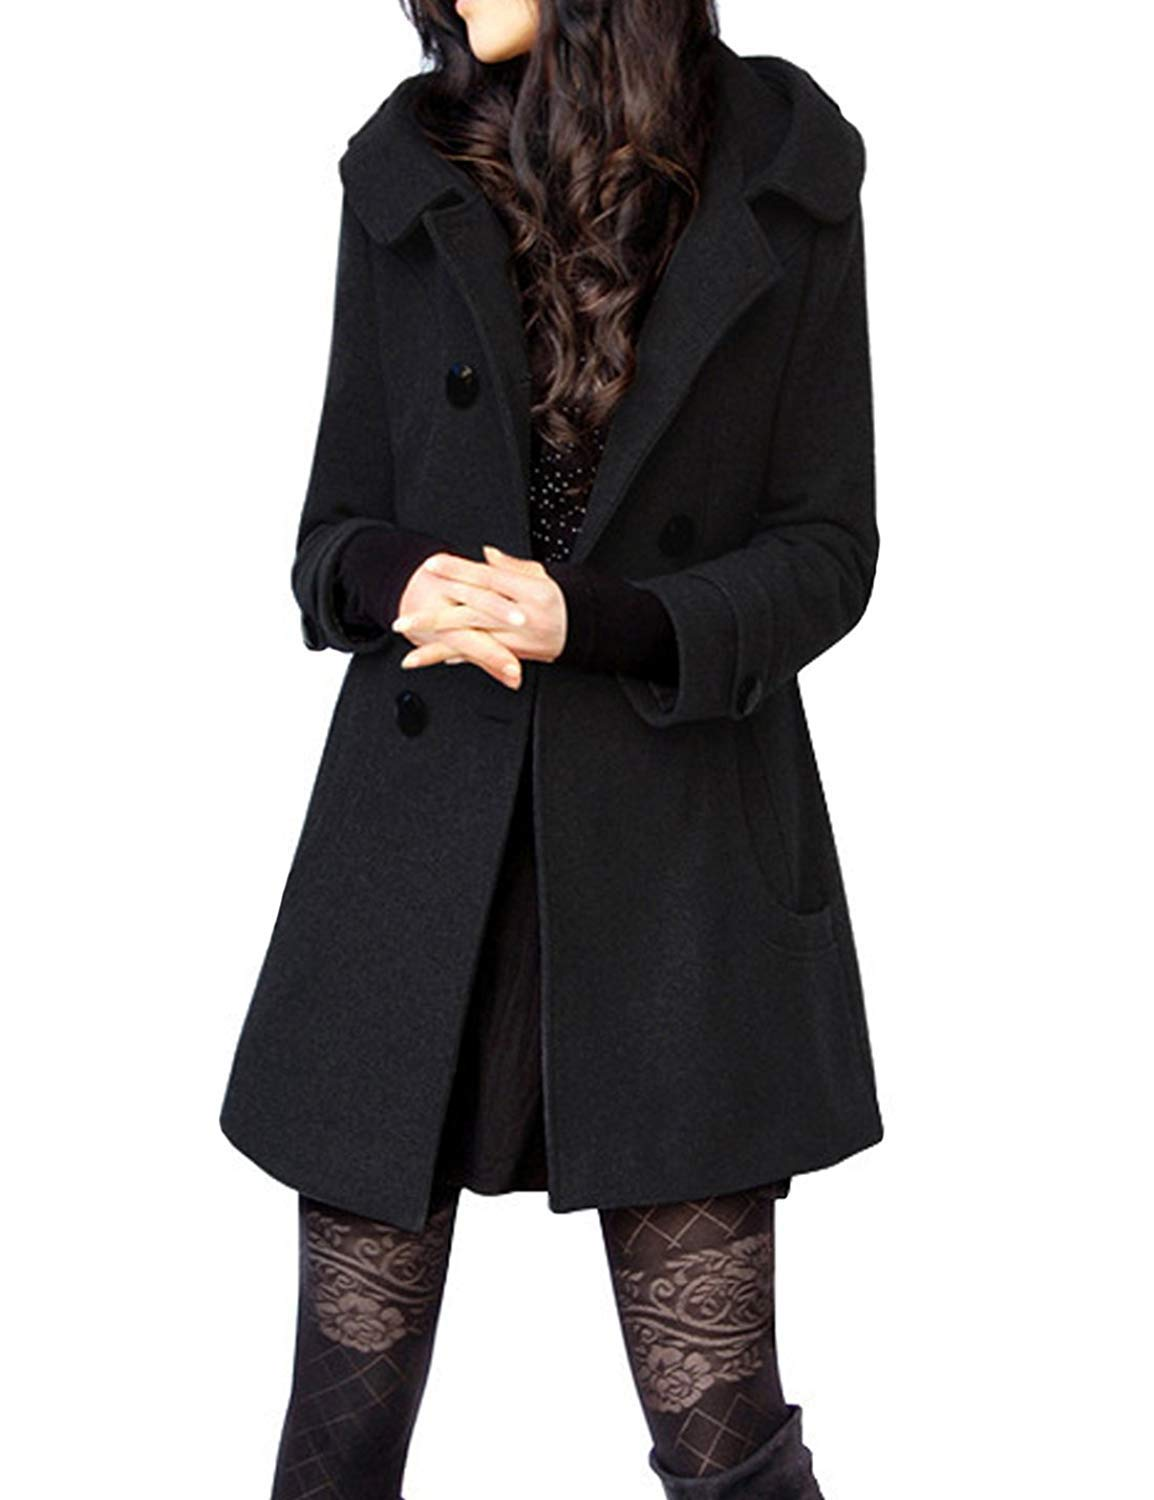 Tanming Women's Winter Double Breasted Wool Blend Long Pea Coat with Hood (Large, Black)